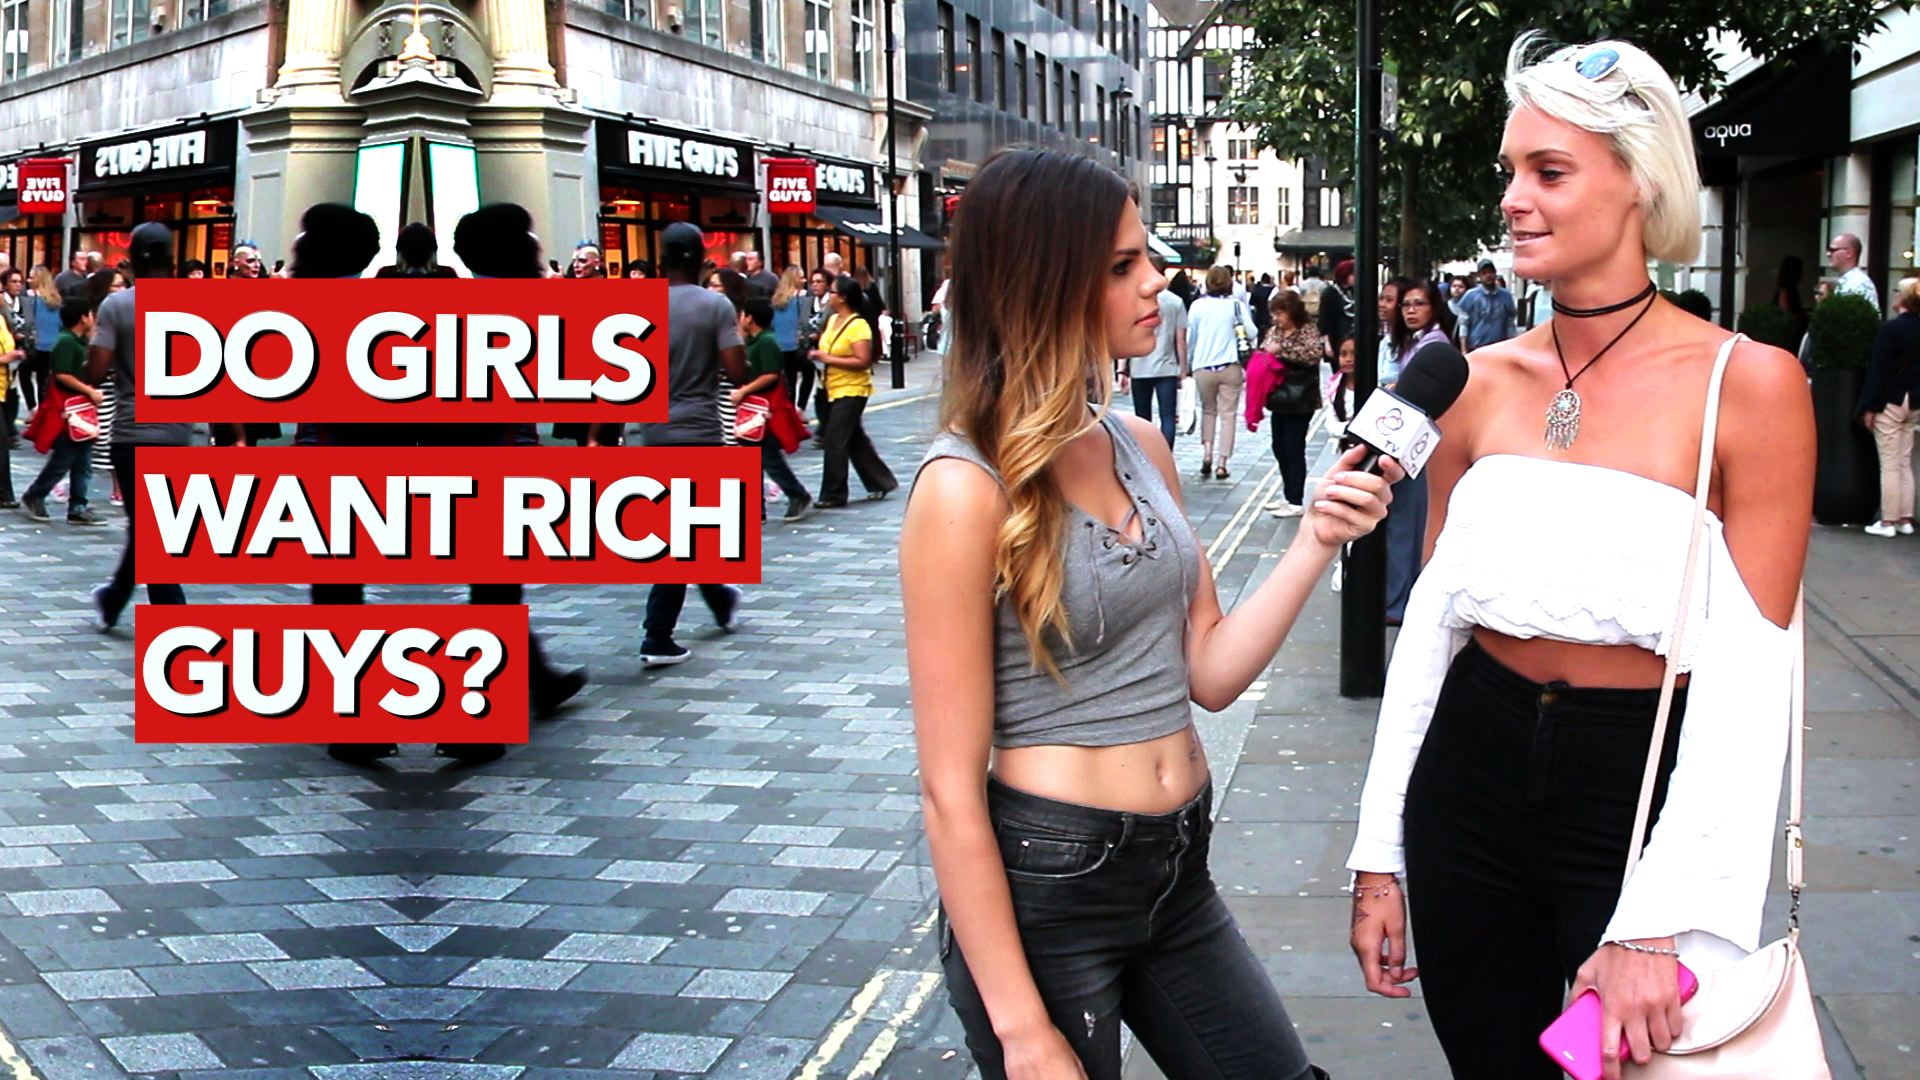 Do girls want rich guys